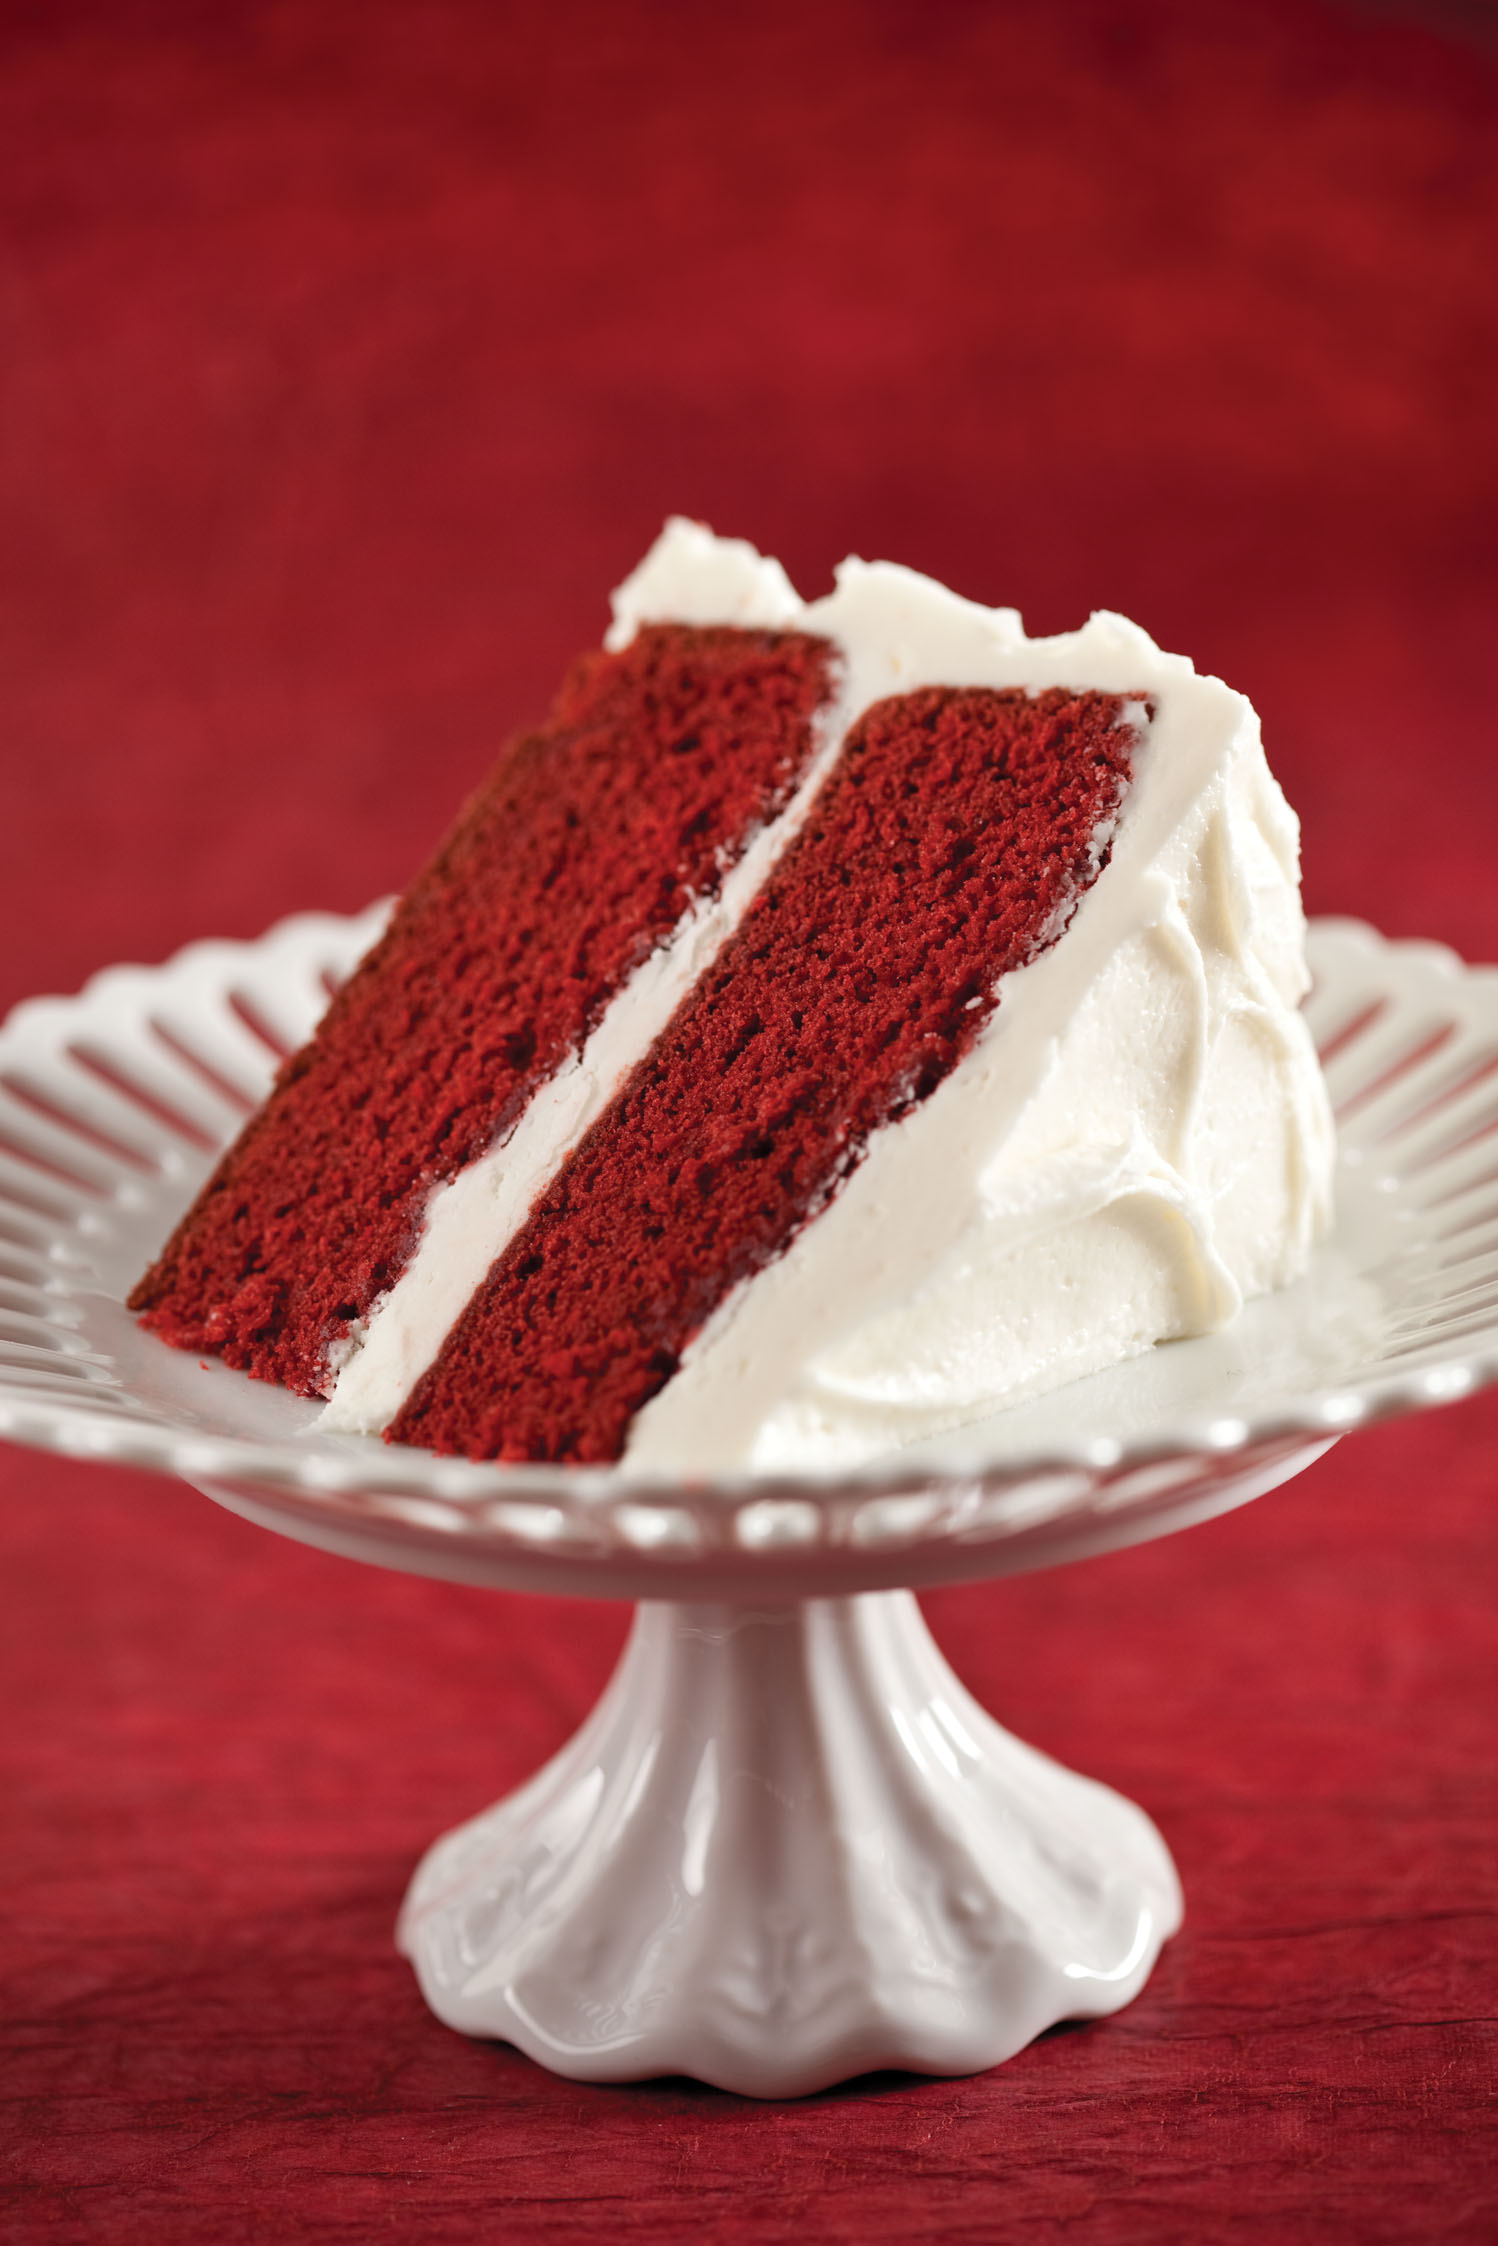 Cake Red Velvet Wallpapers High Quality Download Free